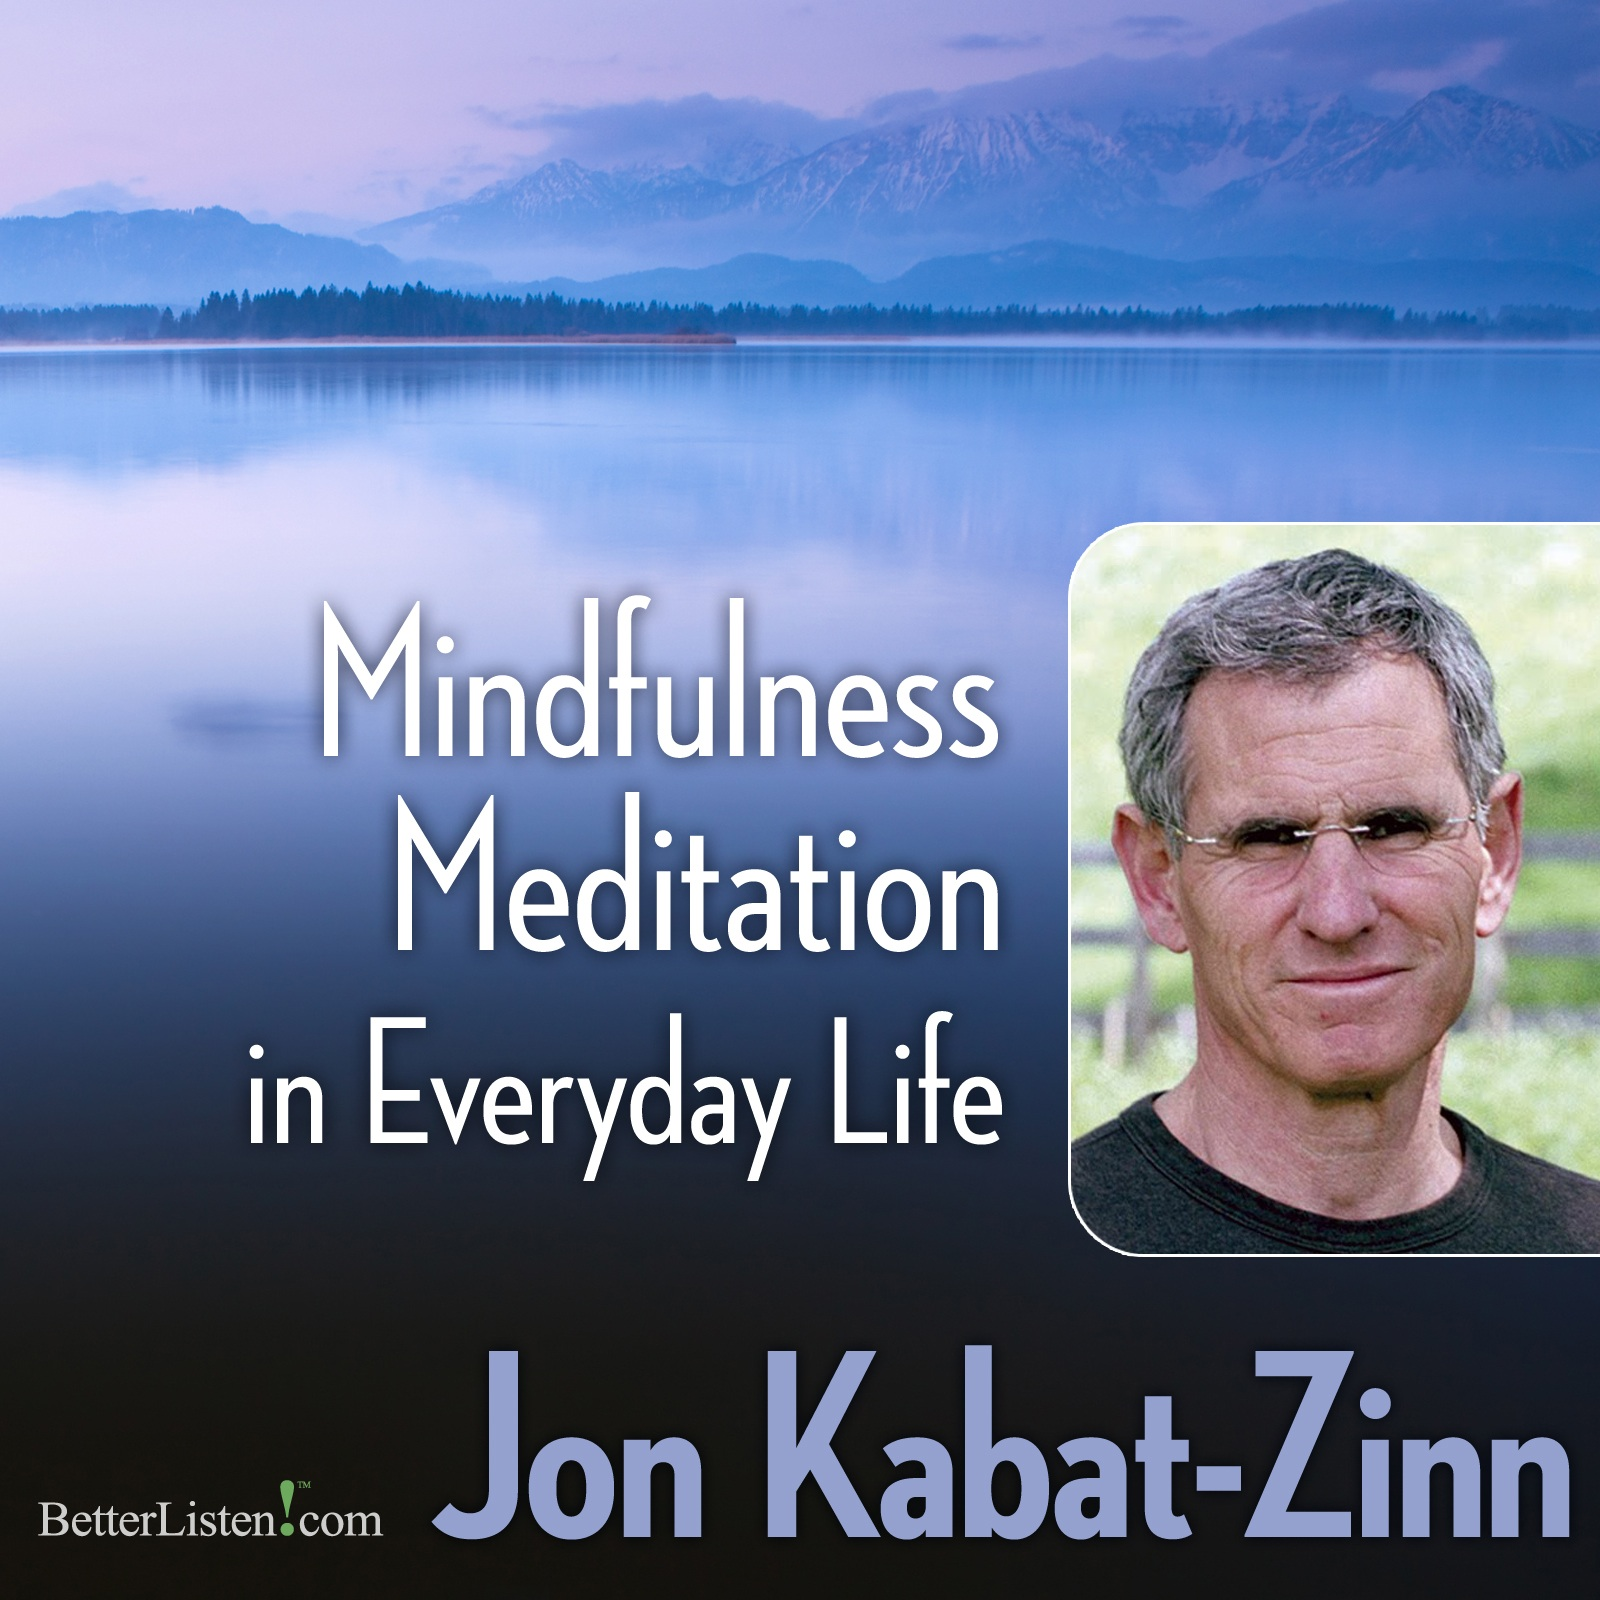 Guided mindfulness practices with jon kabat-zinn series 1.